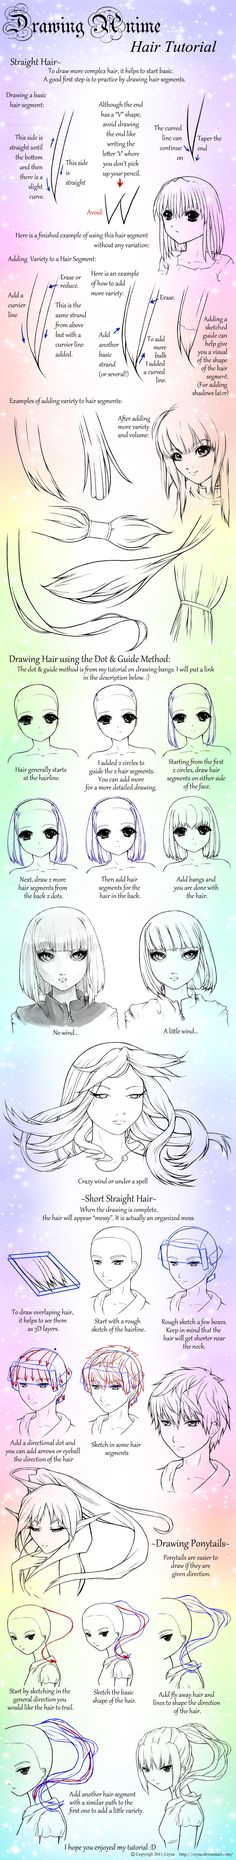 drawing_anime__straight_hair_and_ponytails_by_crysa-d5zged3.jpg 1,604×12,644픽셀